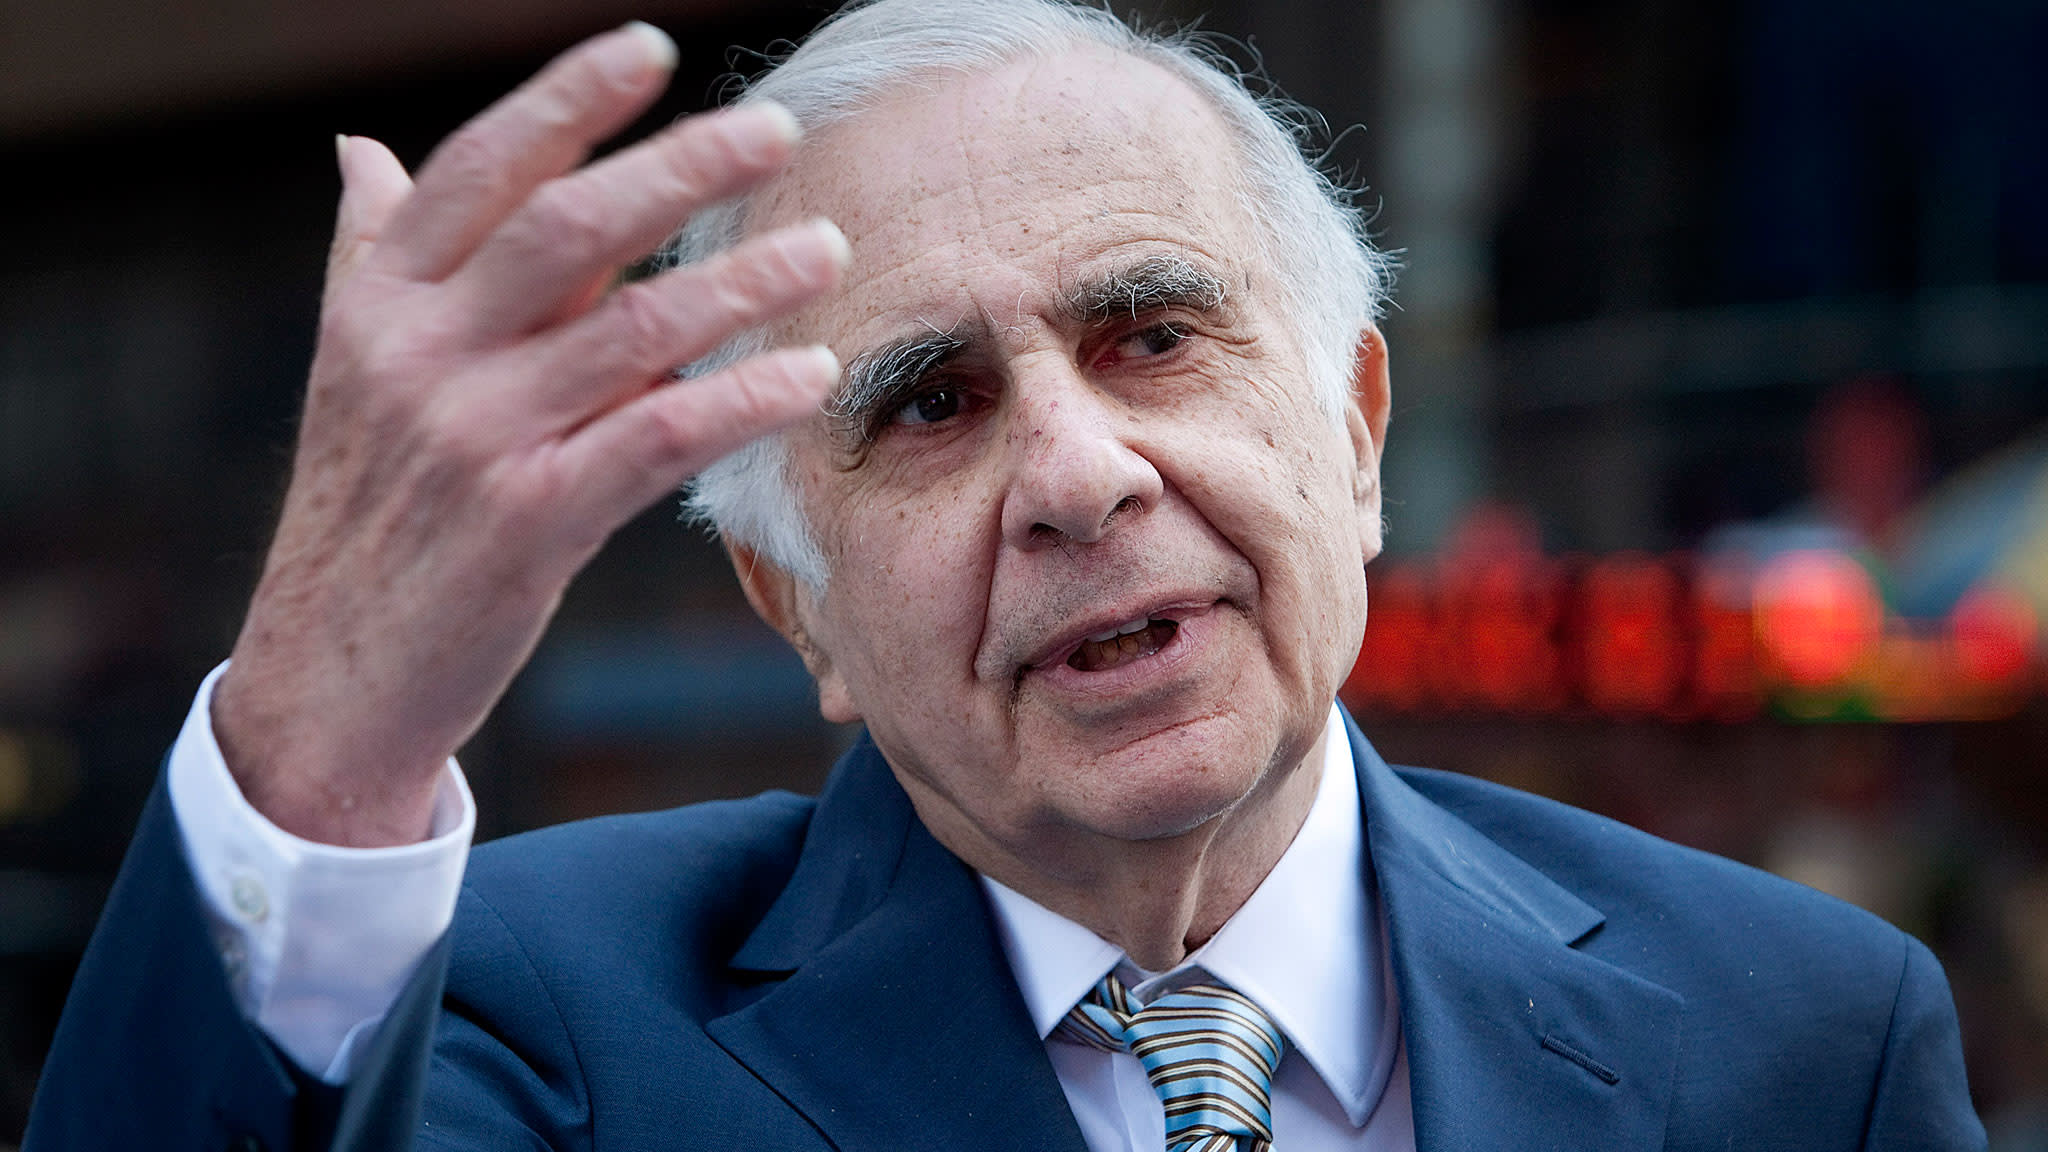 Icahn calls on Apple to step up share buybacks | Financial Times